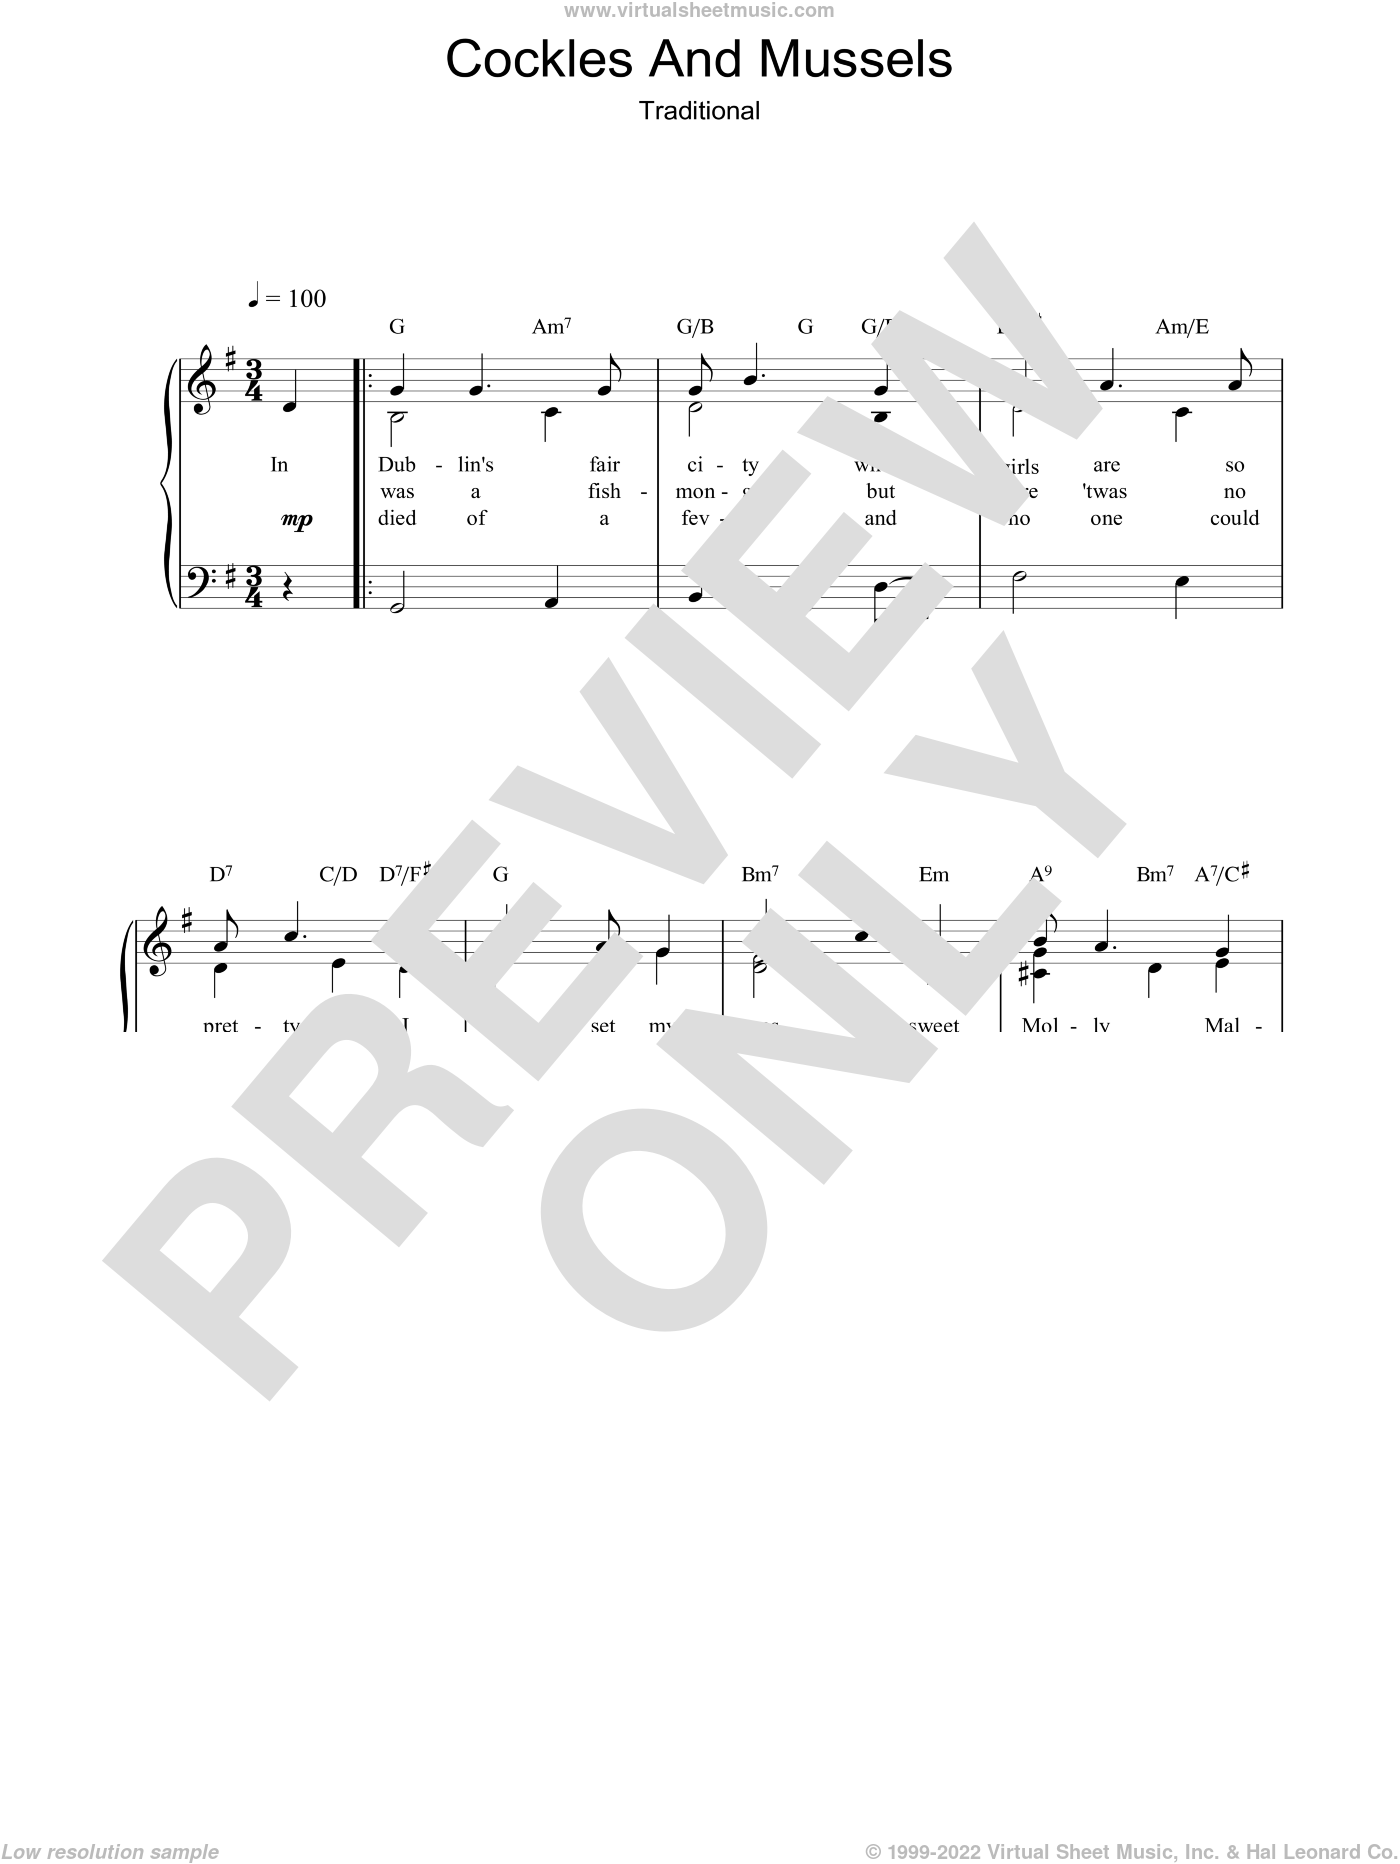 Cockles And Mussels sheet music for voice, piano or guitar, intermediate voice, piano or guitar. Score Image Preview.